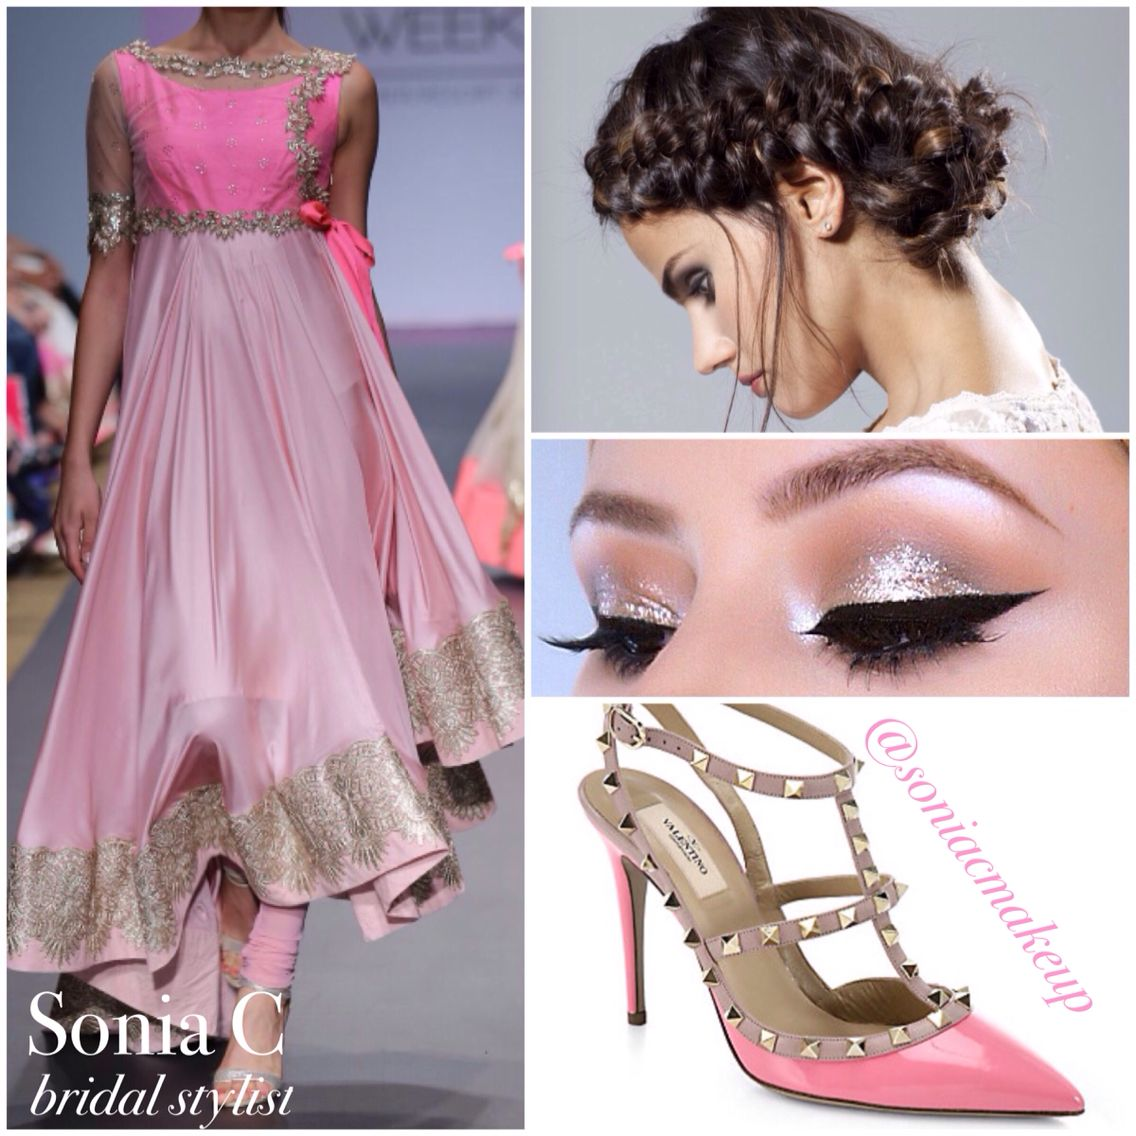 Grab attention with this bridesmaids or indian wedding guest look ...